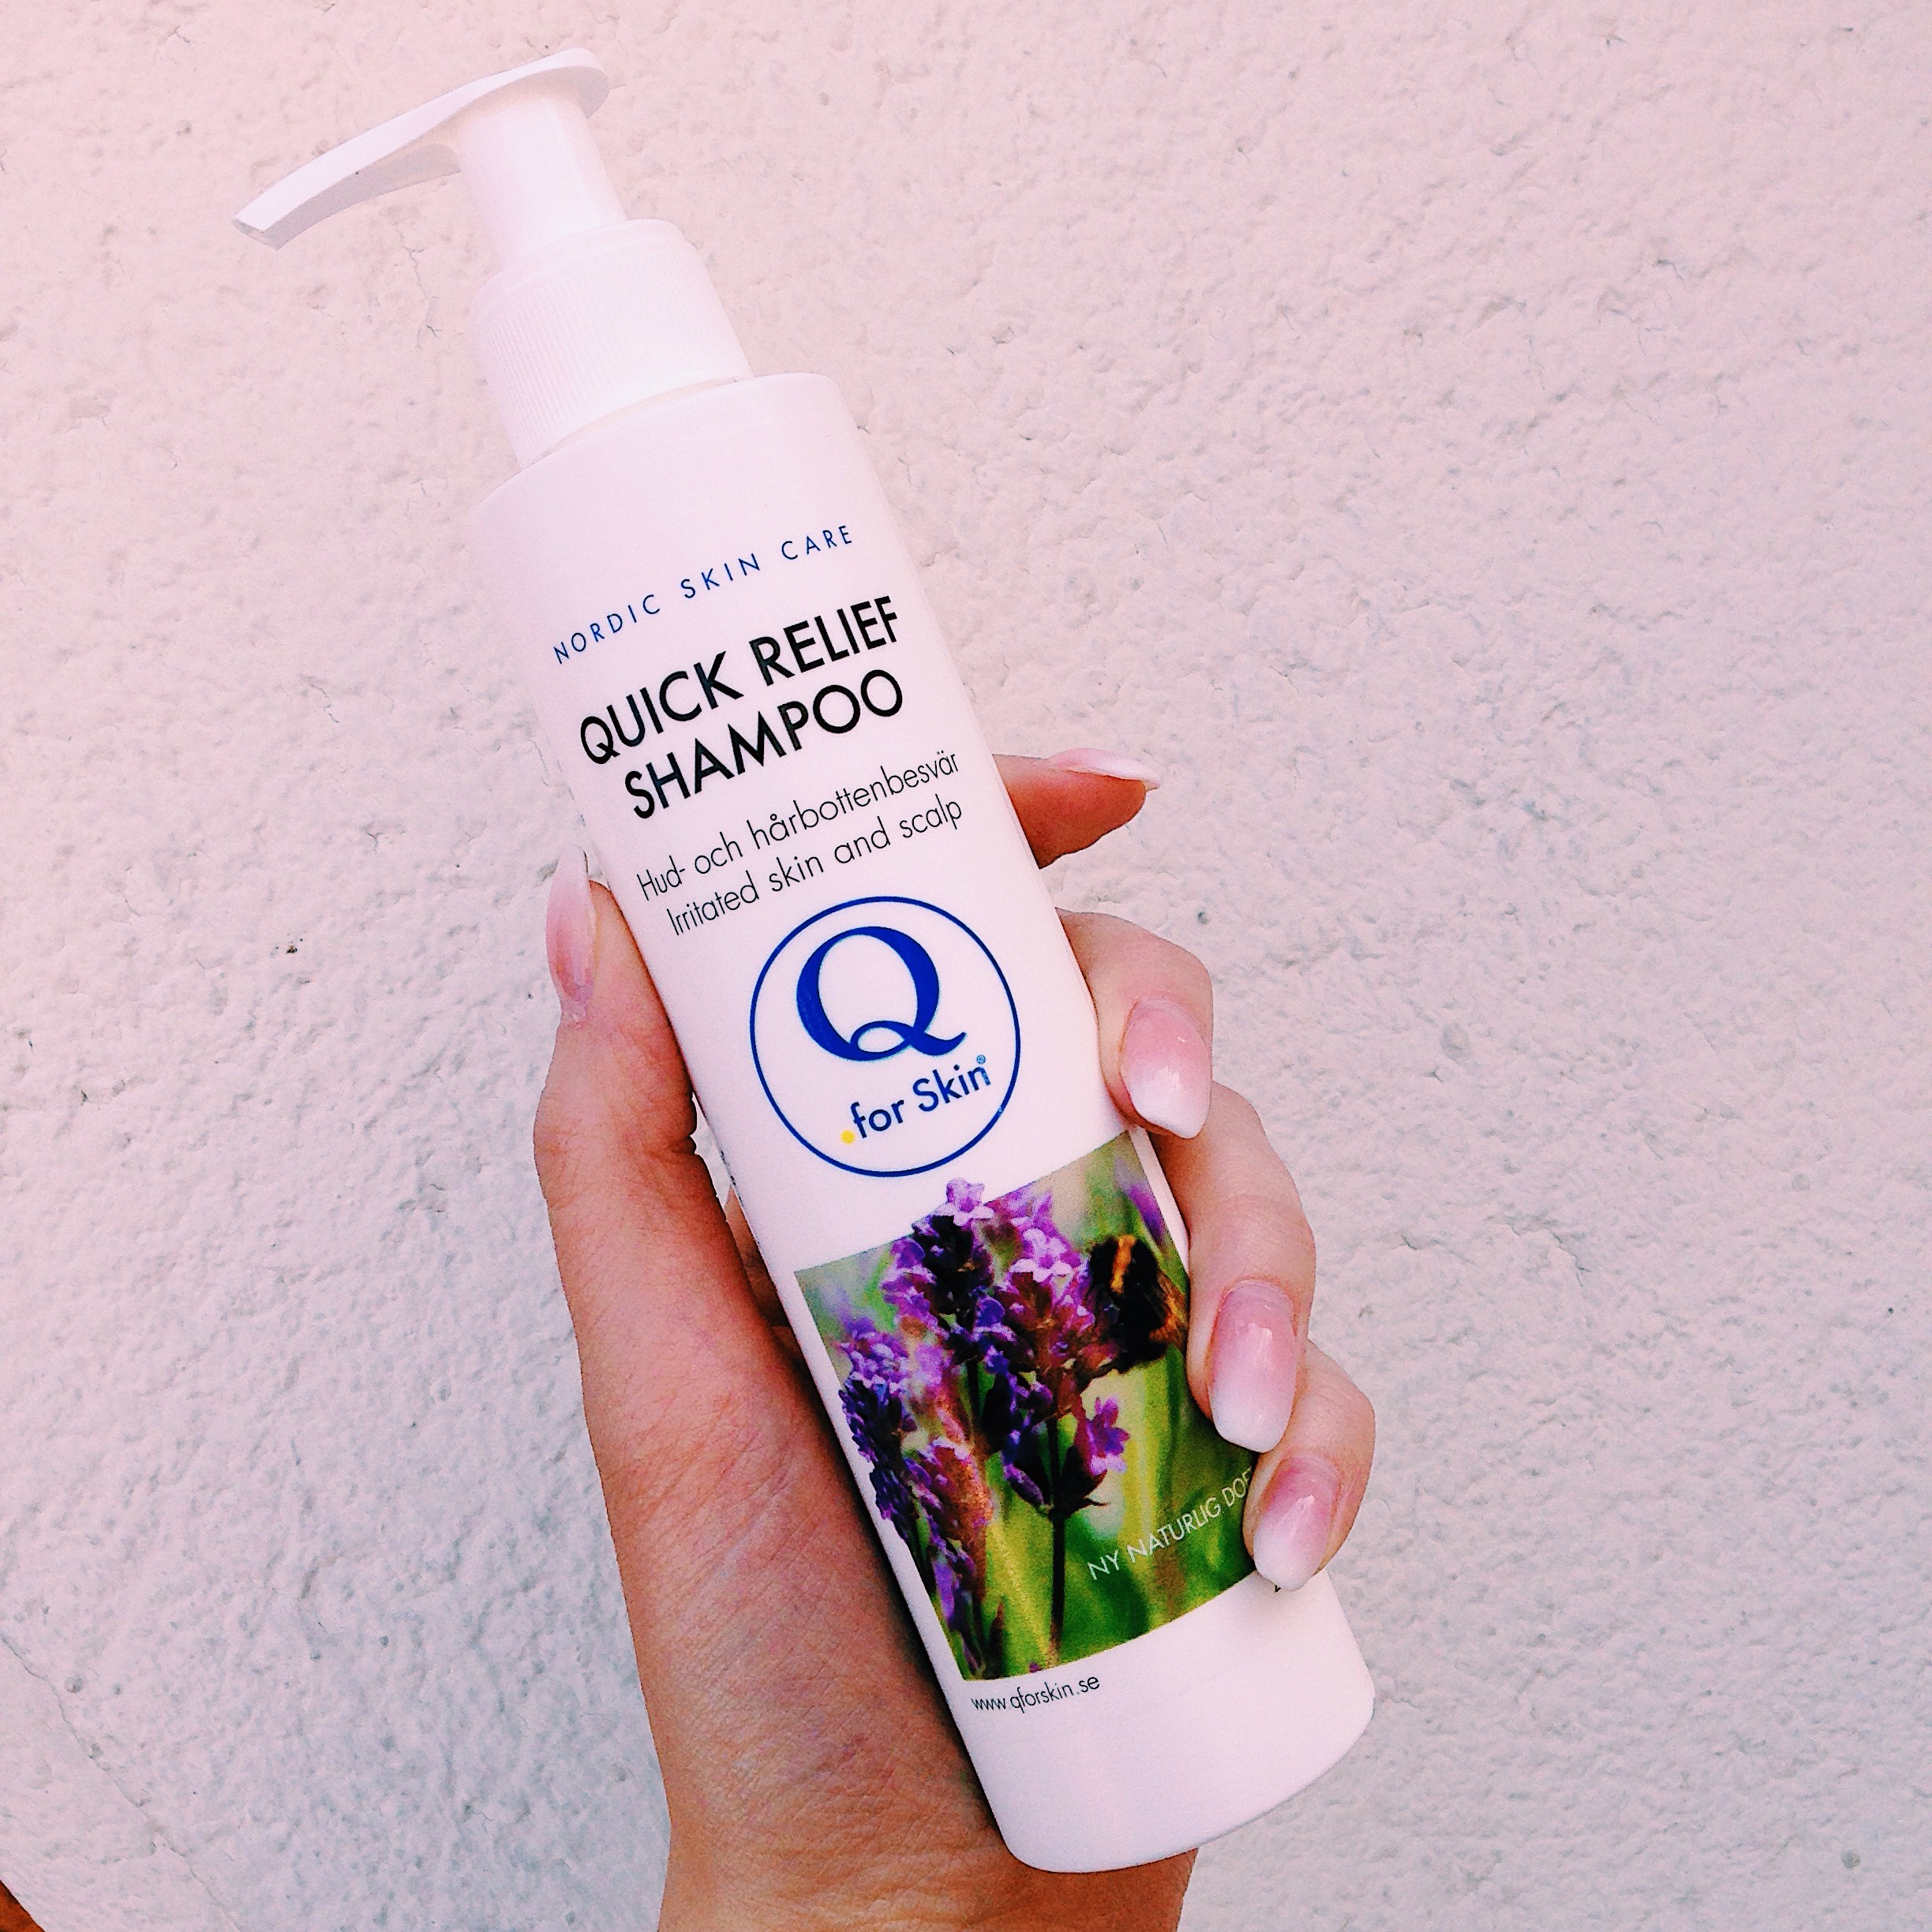 quick relief shampoo - q for skin